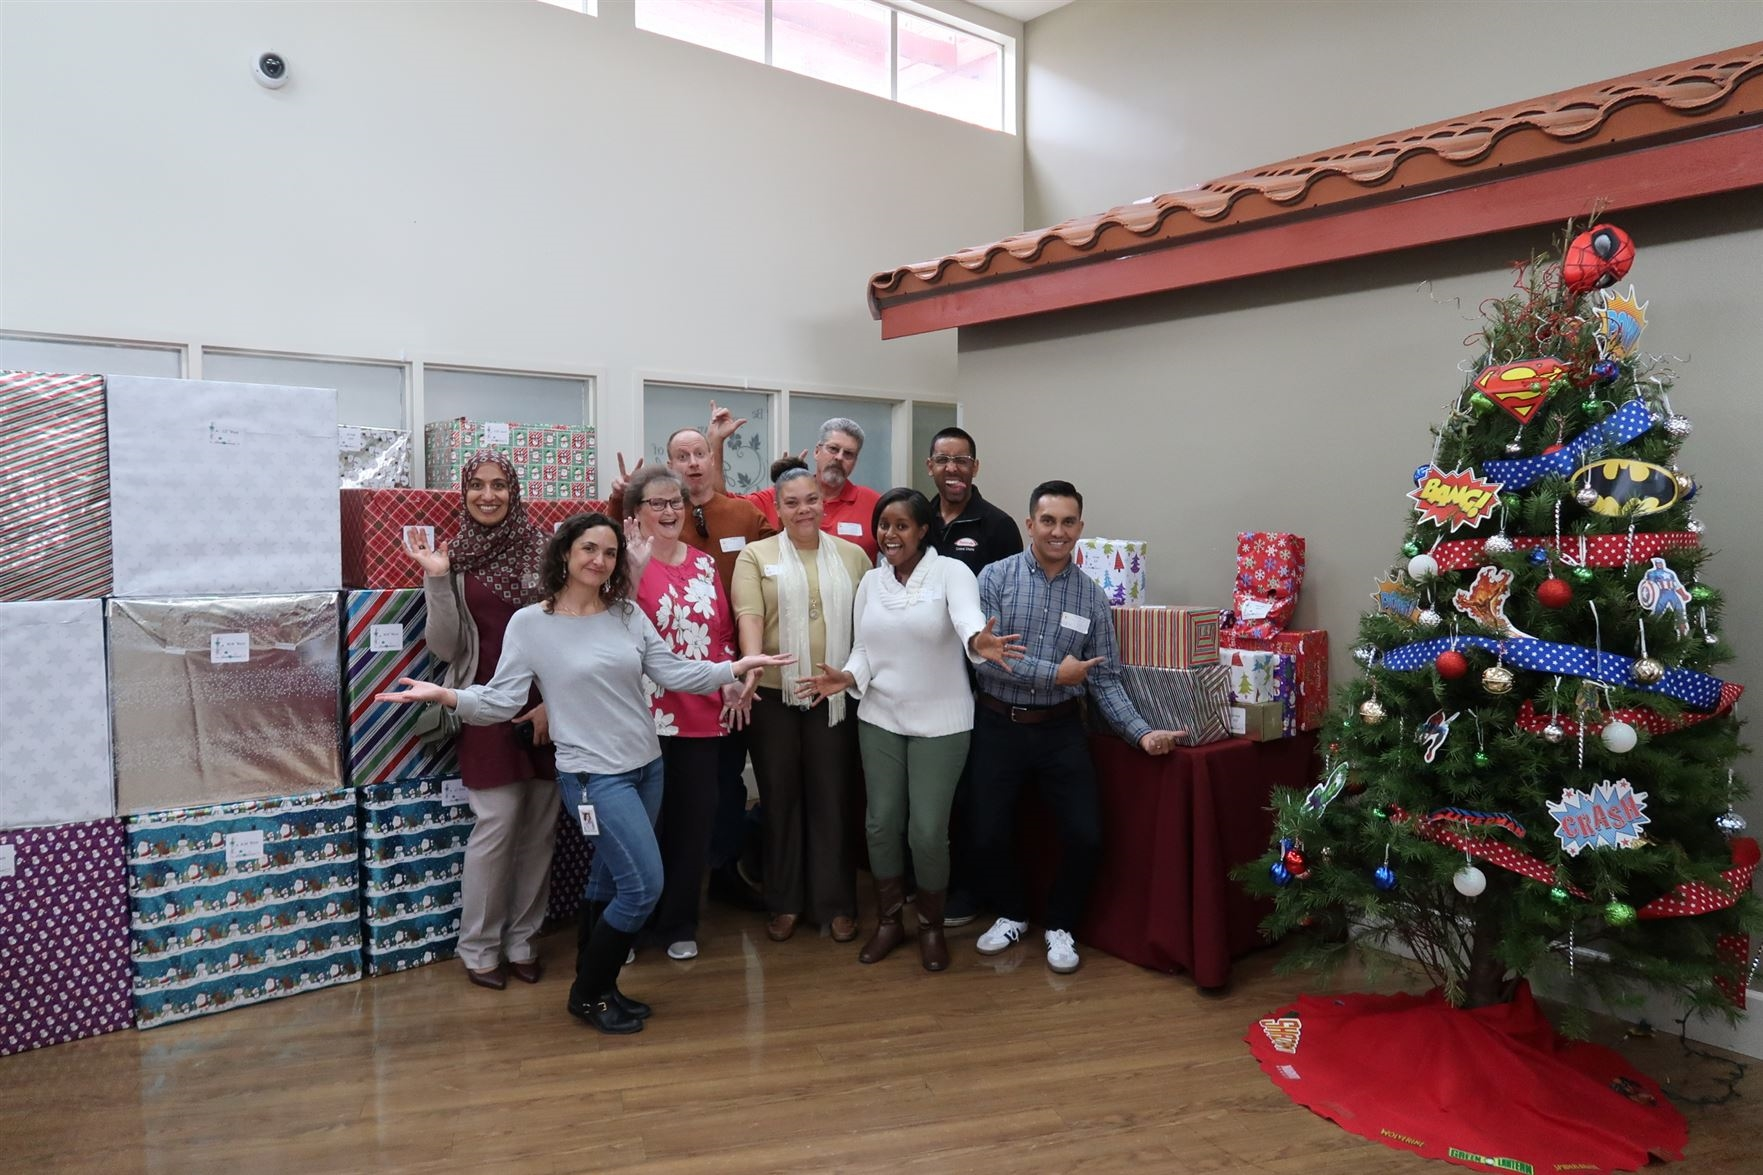 Takeda employees bring holiday cheer to SD Center for Children. Dec 2019